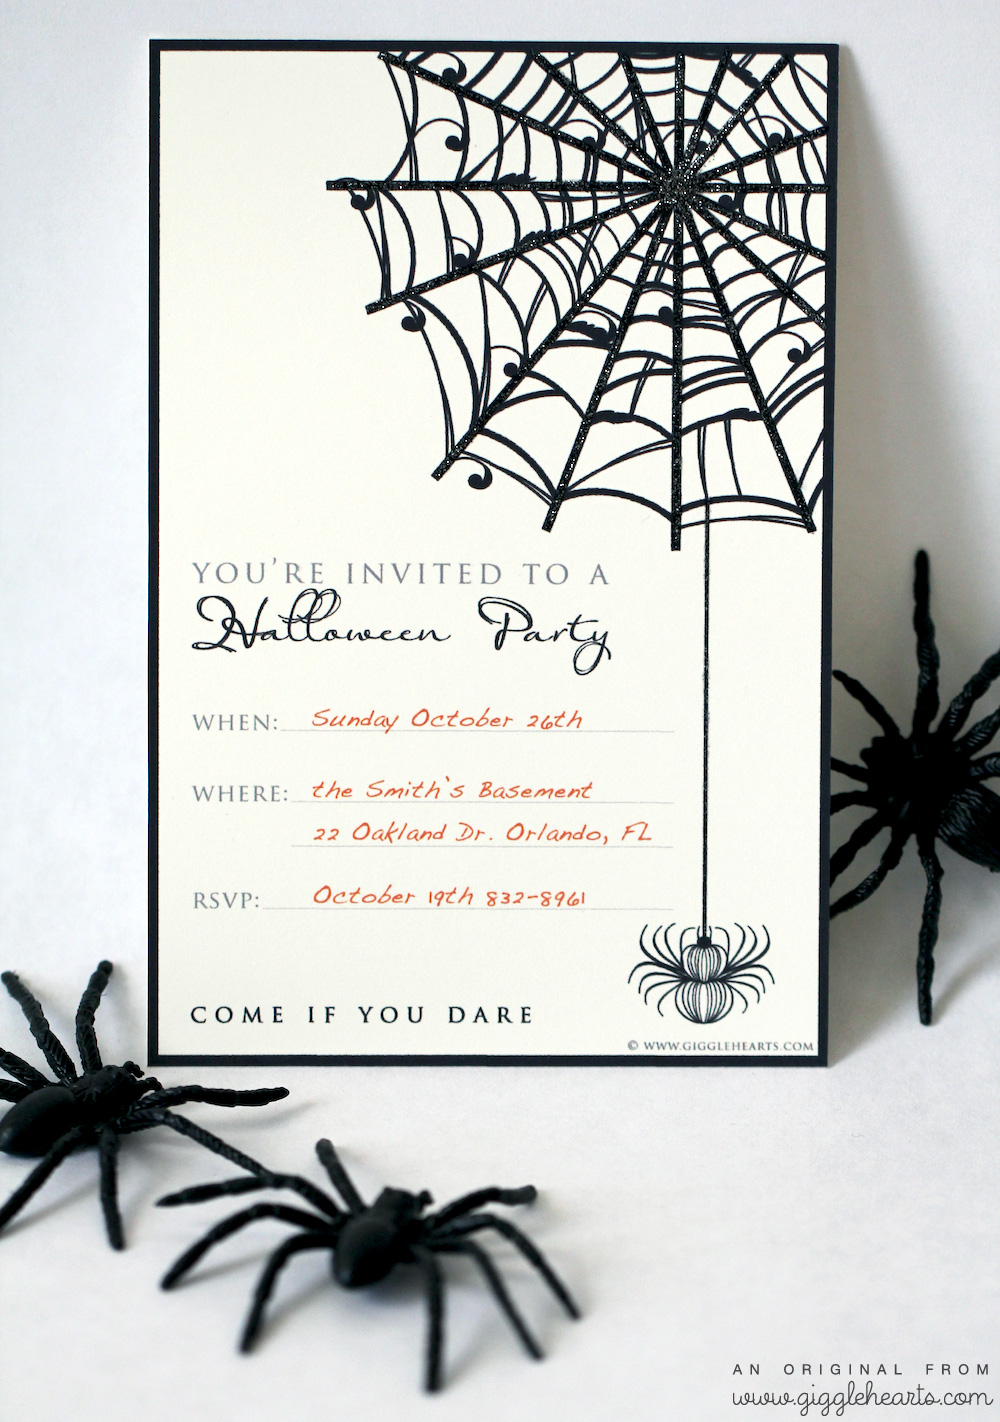 Printable Halloween Party Invitation from www.GiggleHearts.com